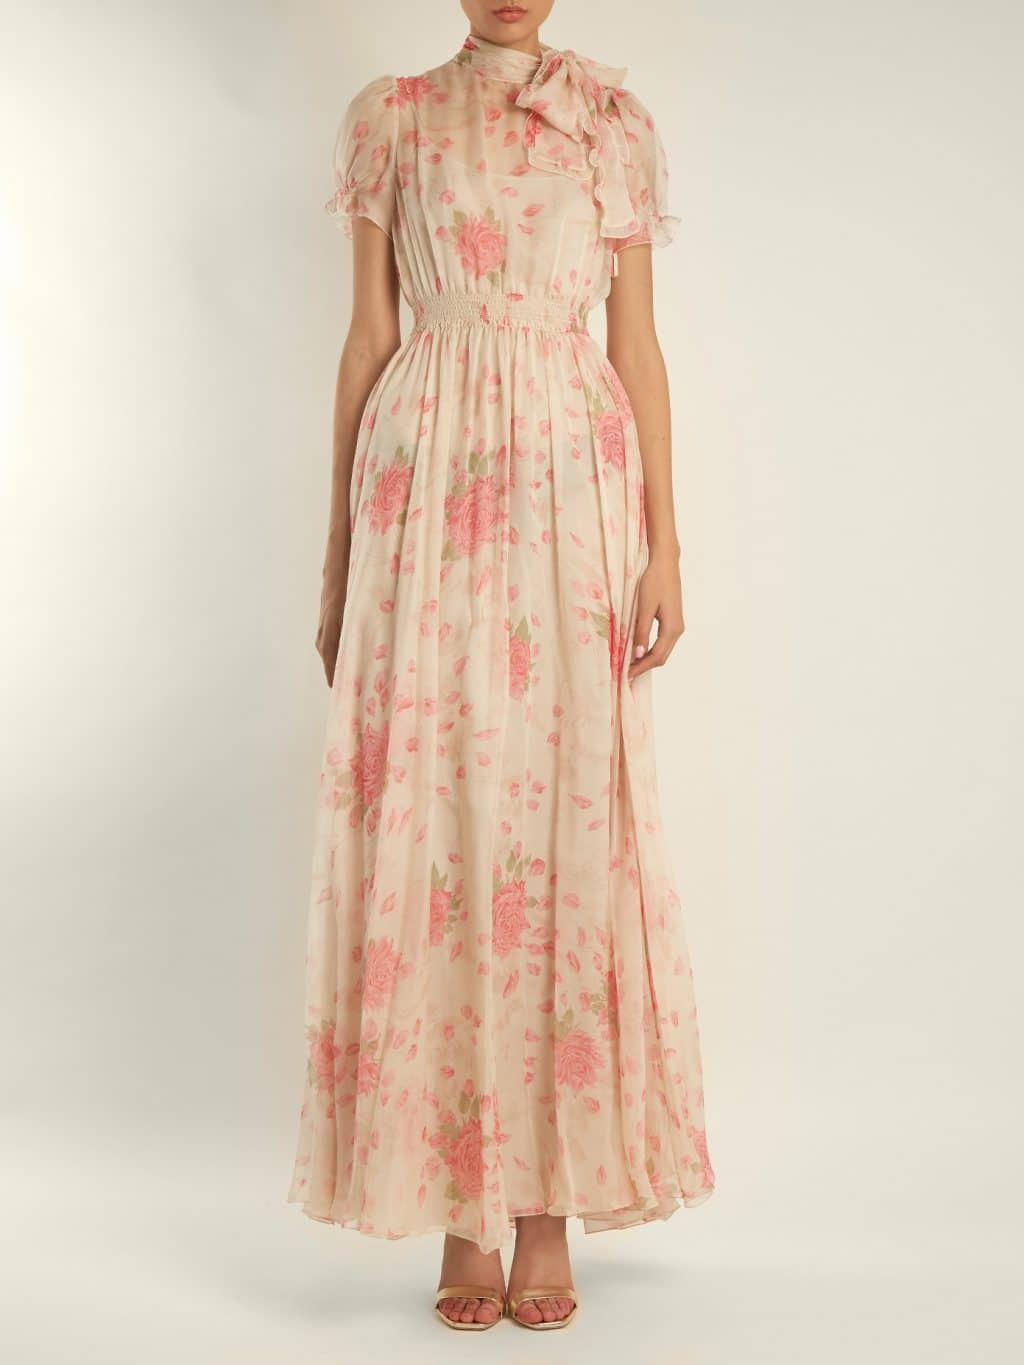 VALENTINO Neck Tie Rose Print Silk Chiffon Cream Gown - We Select ...